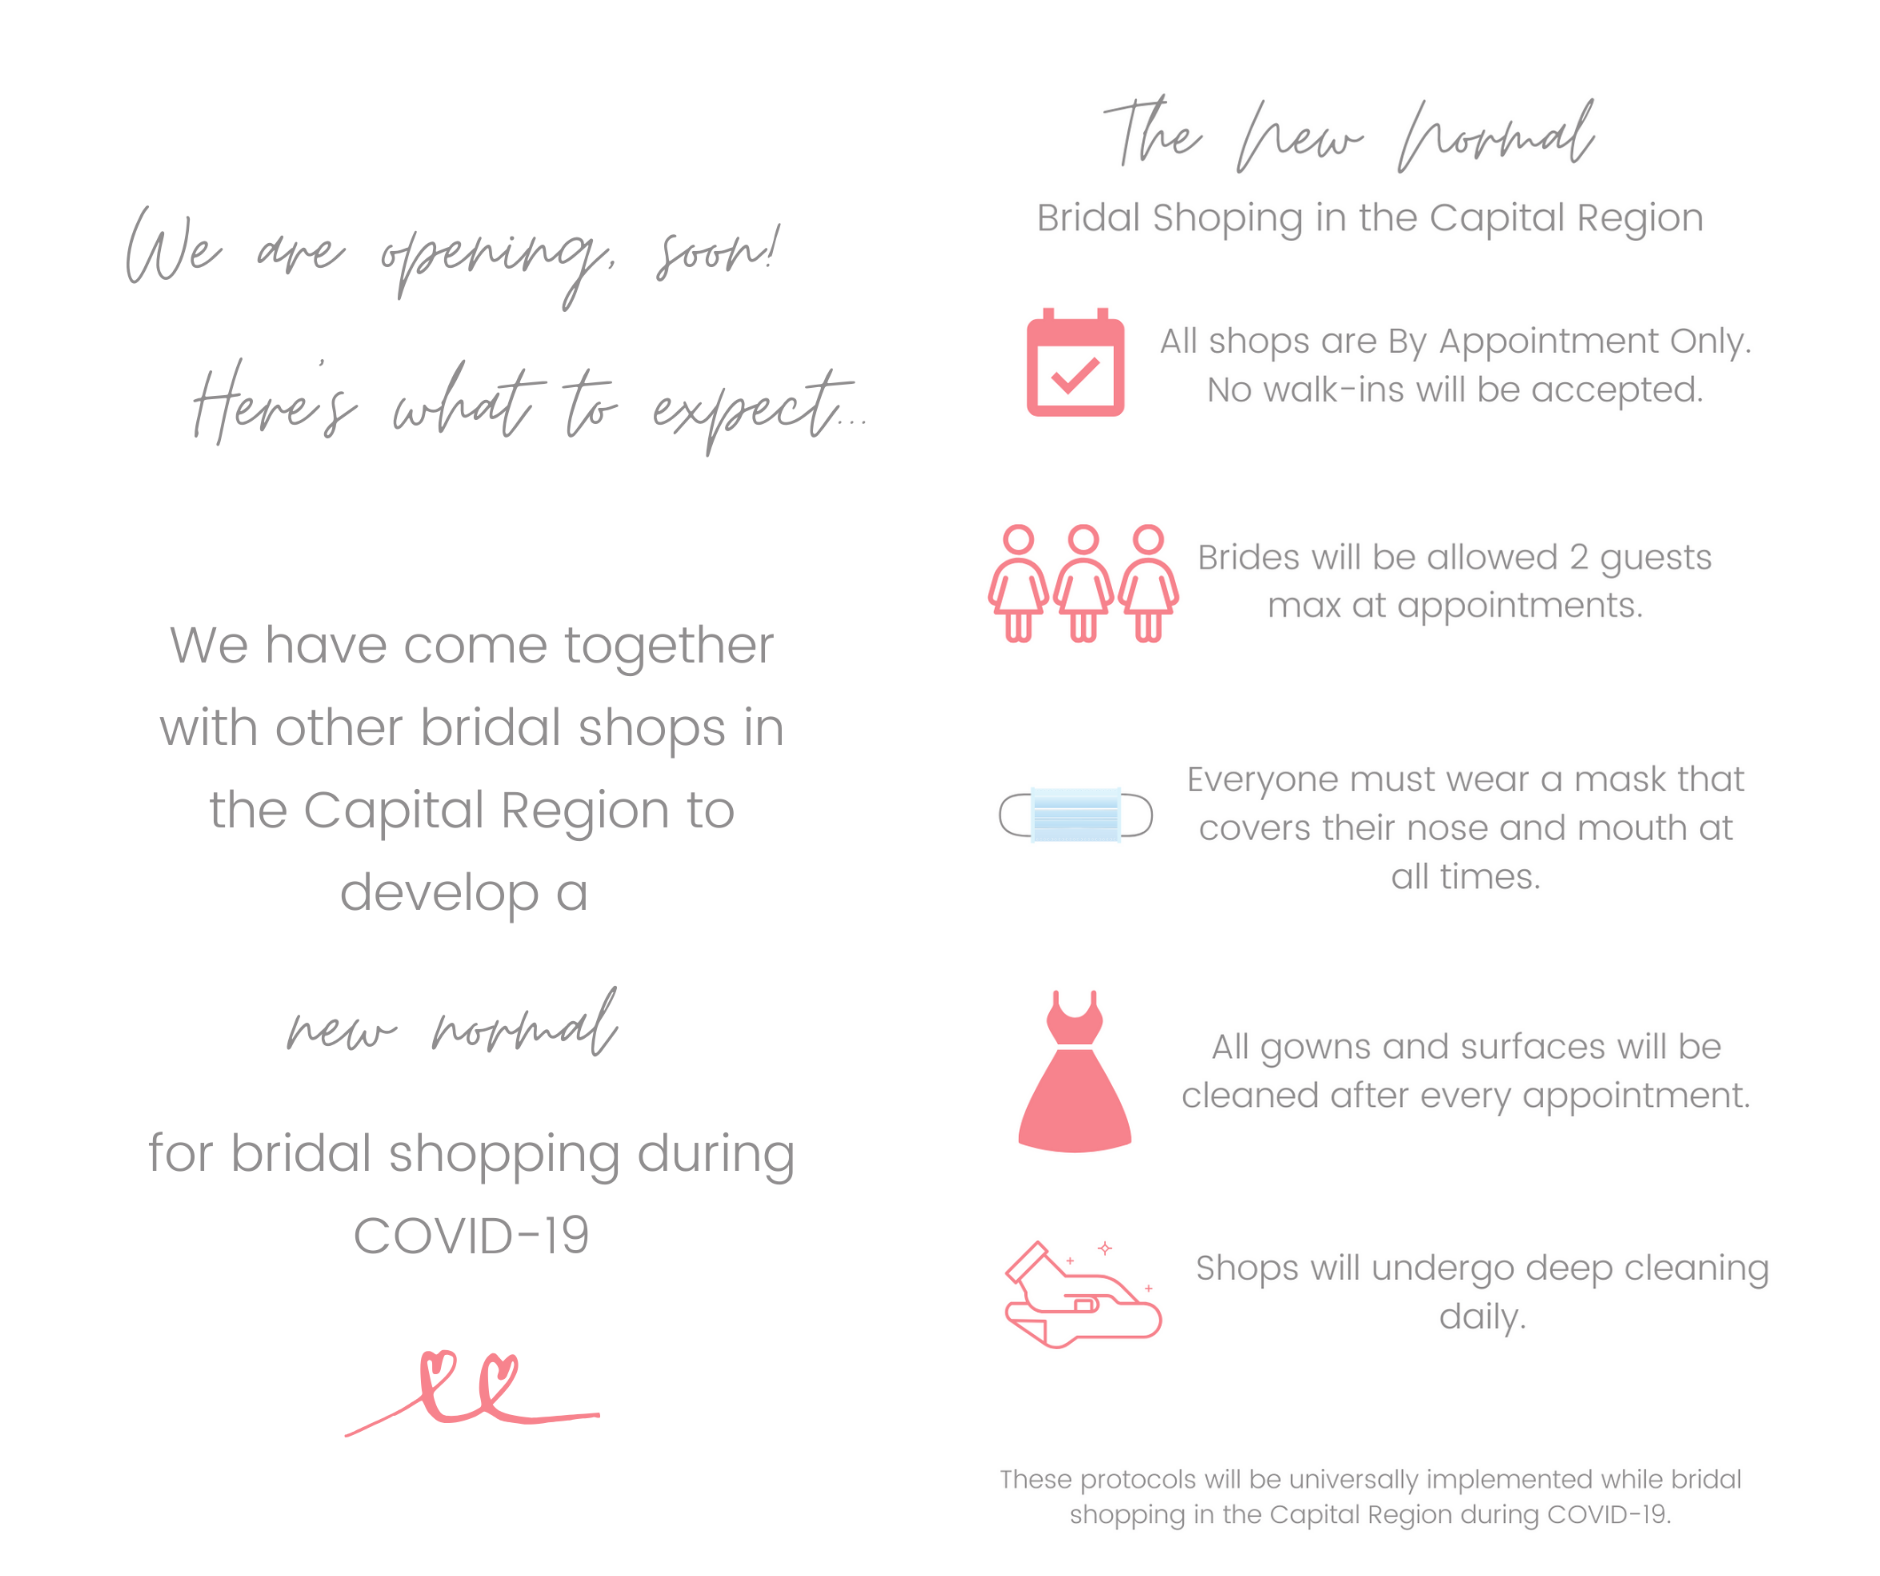 COVID-19 Bridal Shopping Protocols